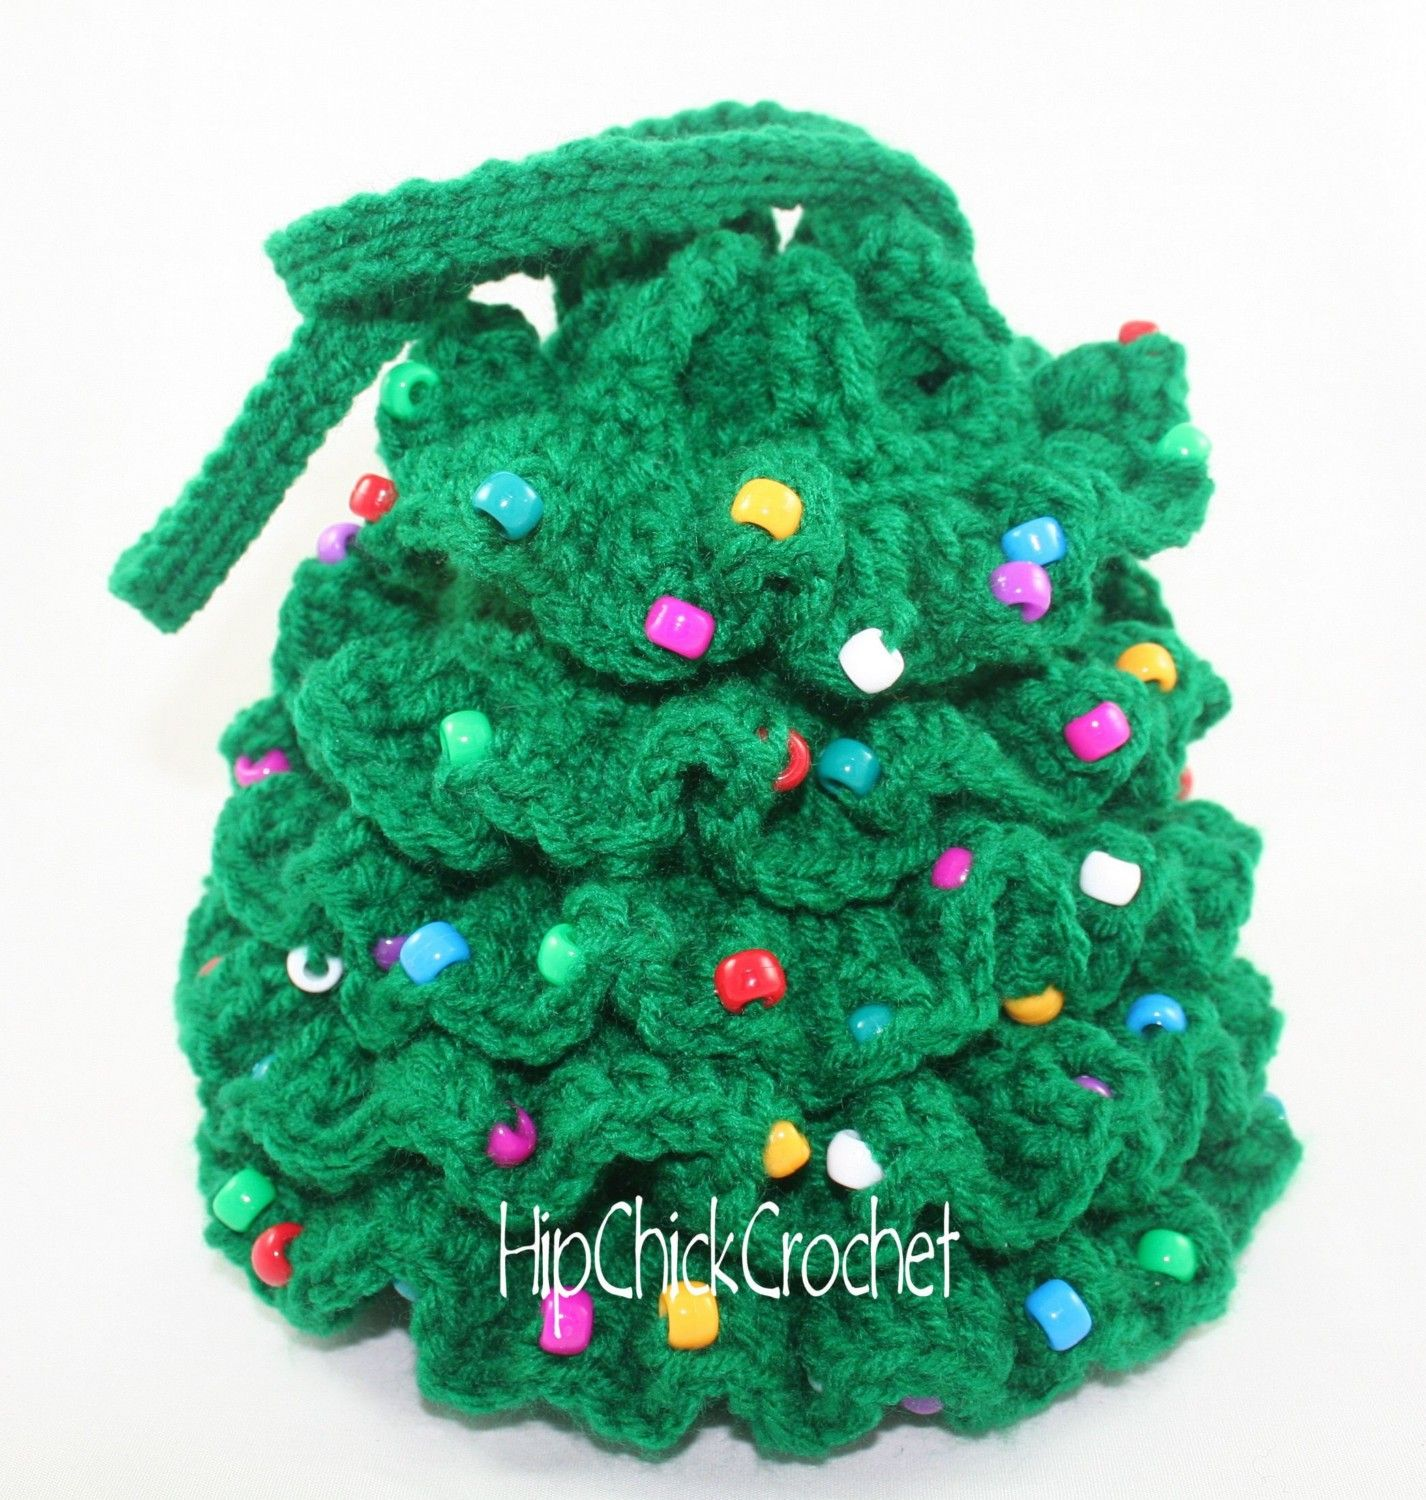 Christmascrochetpatternsfreeonline christmas tree coaster christmascrochetpatternsfreeonline christmas tree coaster crochet pattern bankloansurffo Image collections